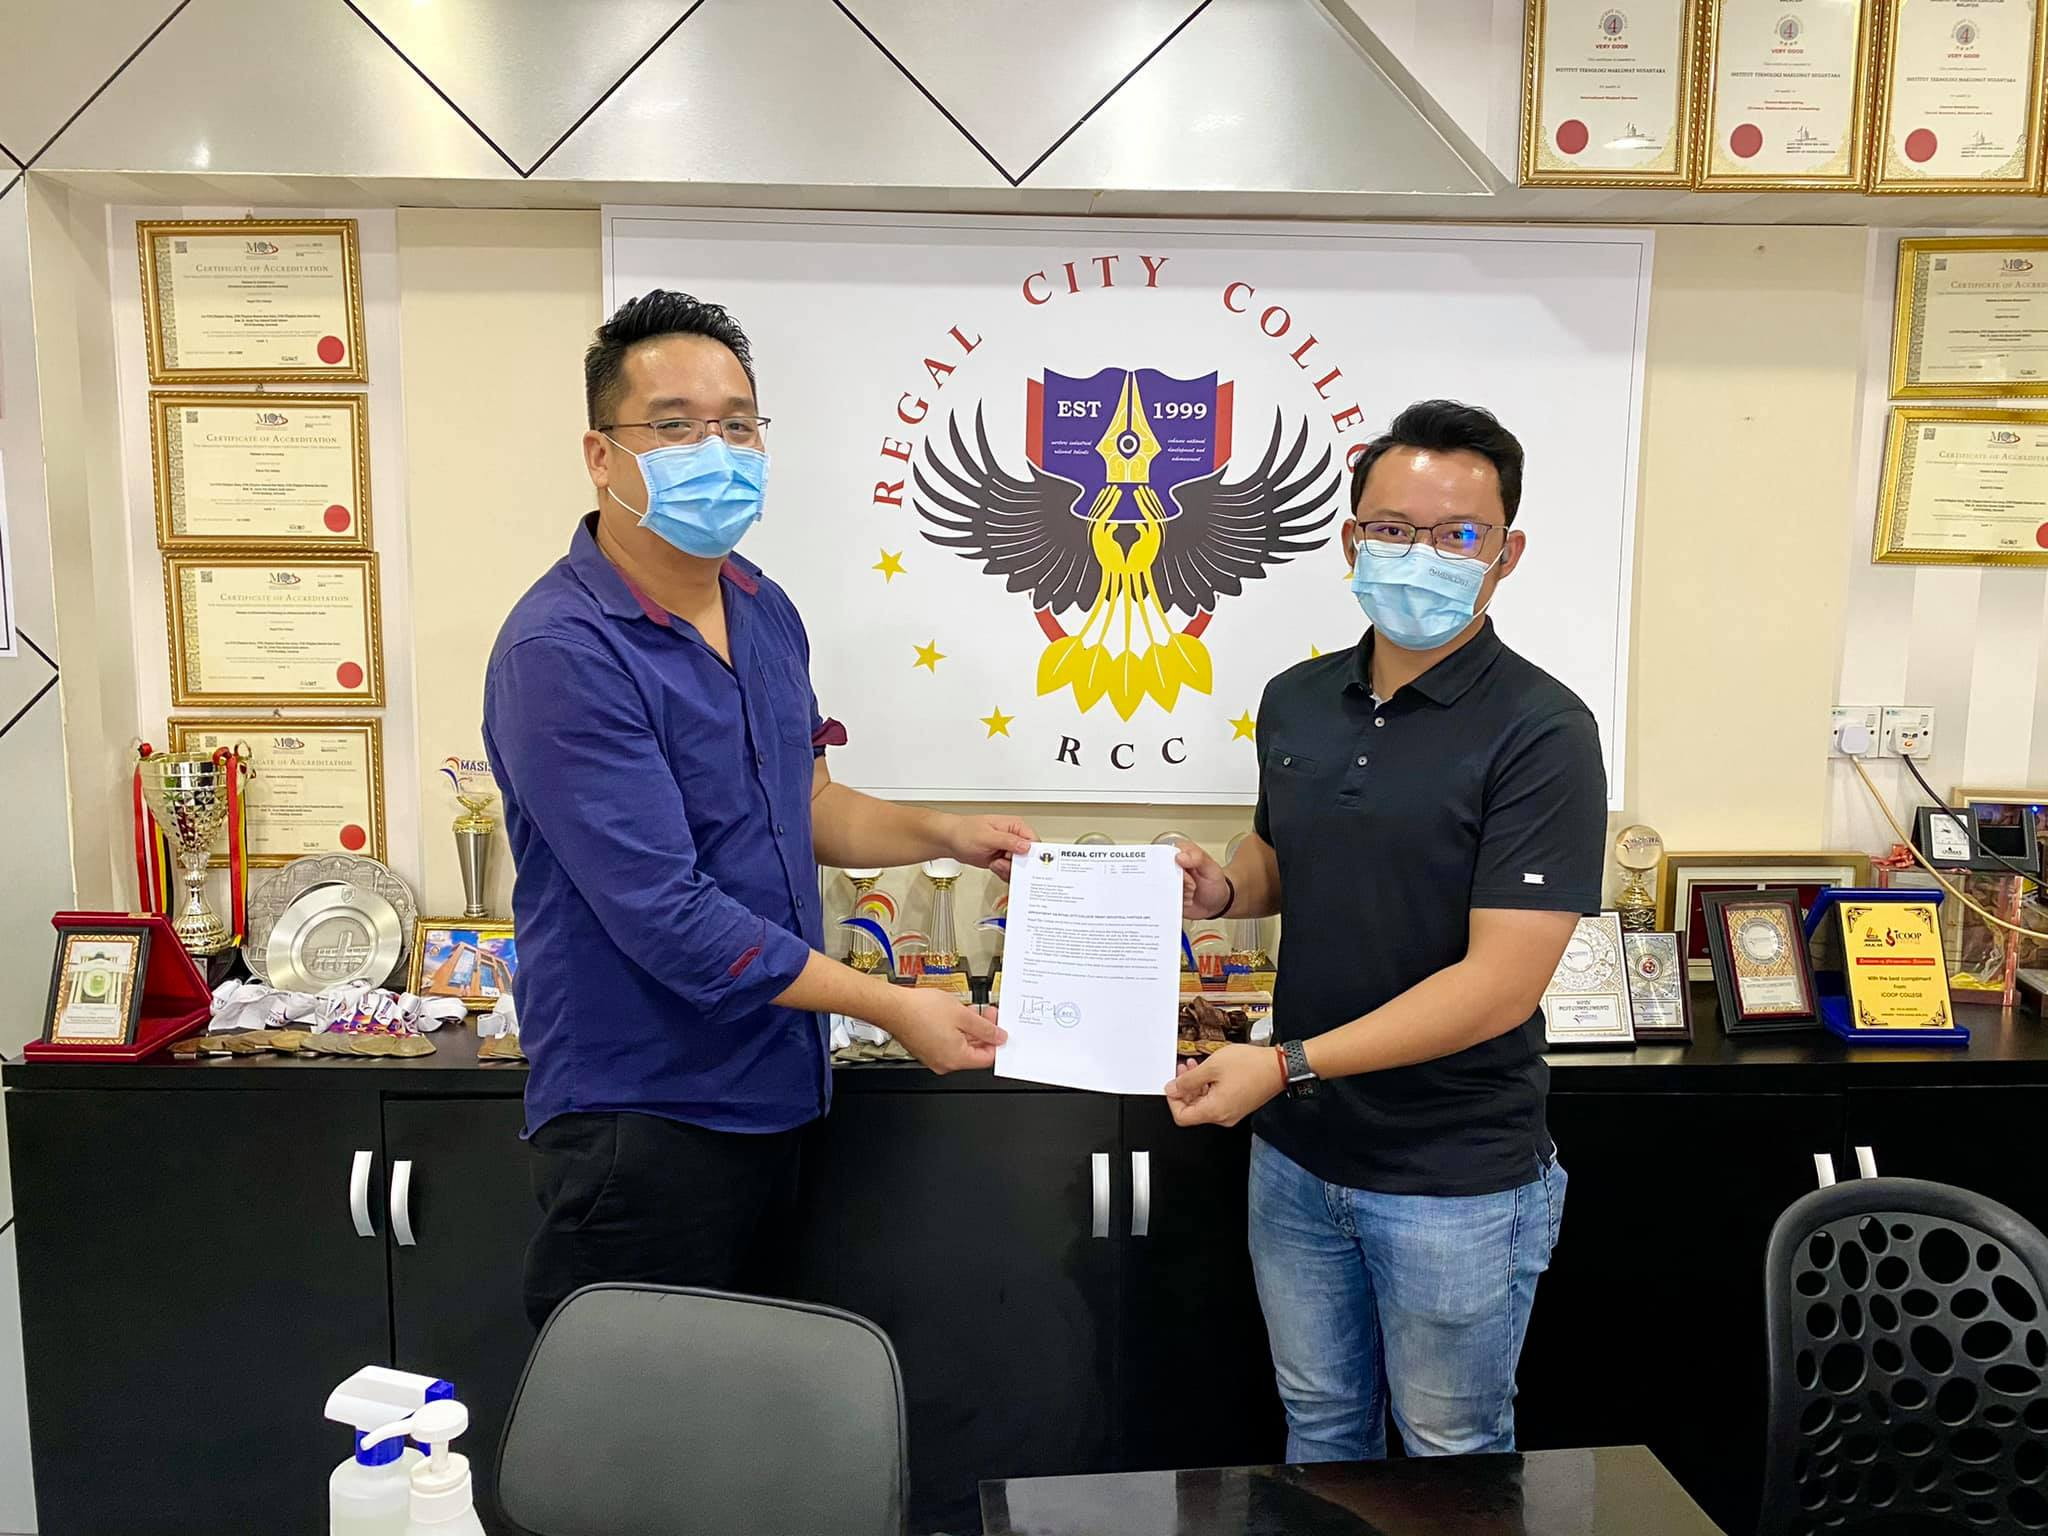 SARAWAK ESPORTS ASSOCIATION is now official Smart Industrial Partner with Regal …